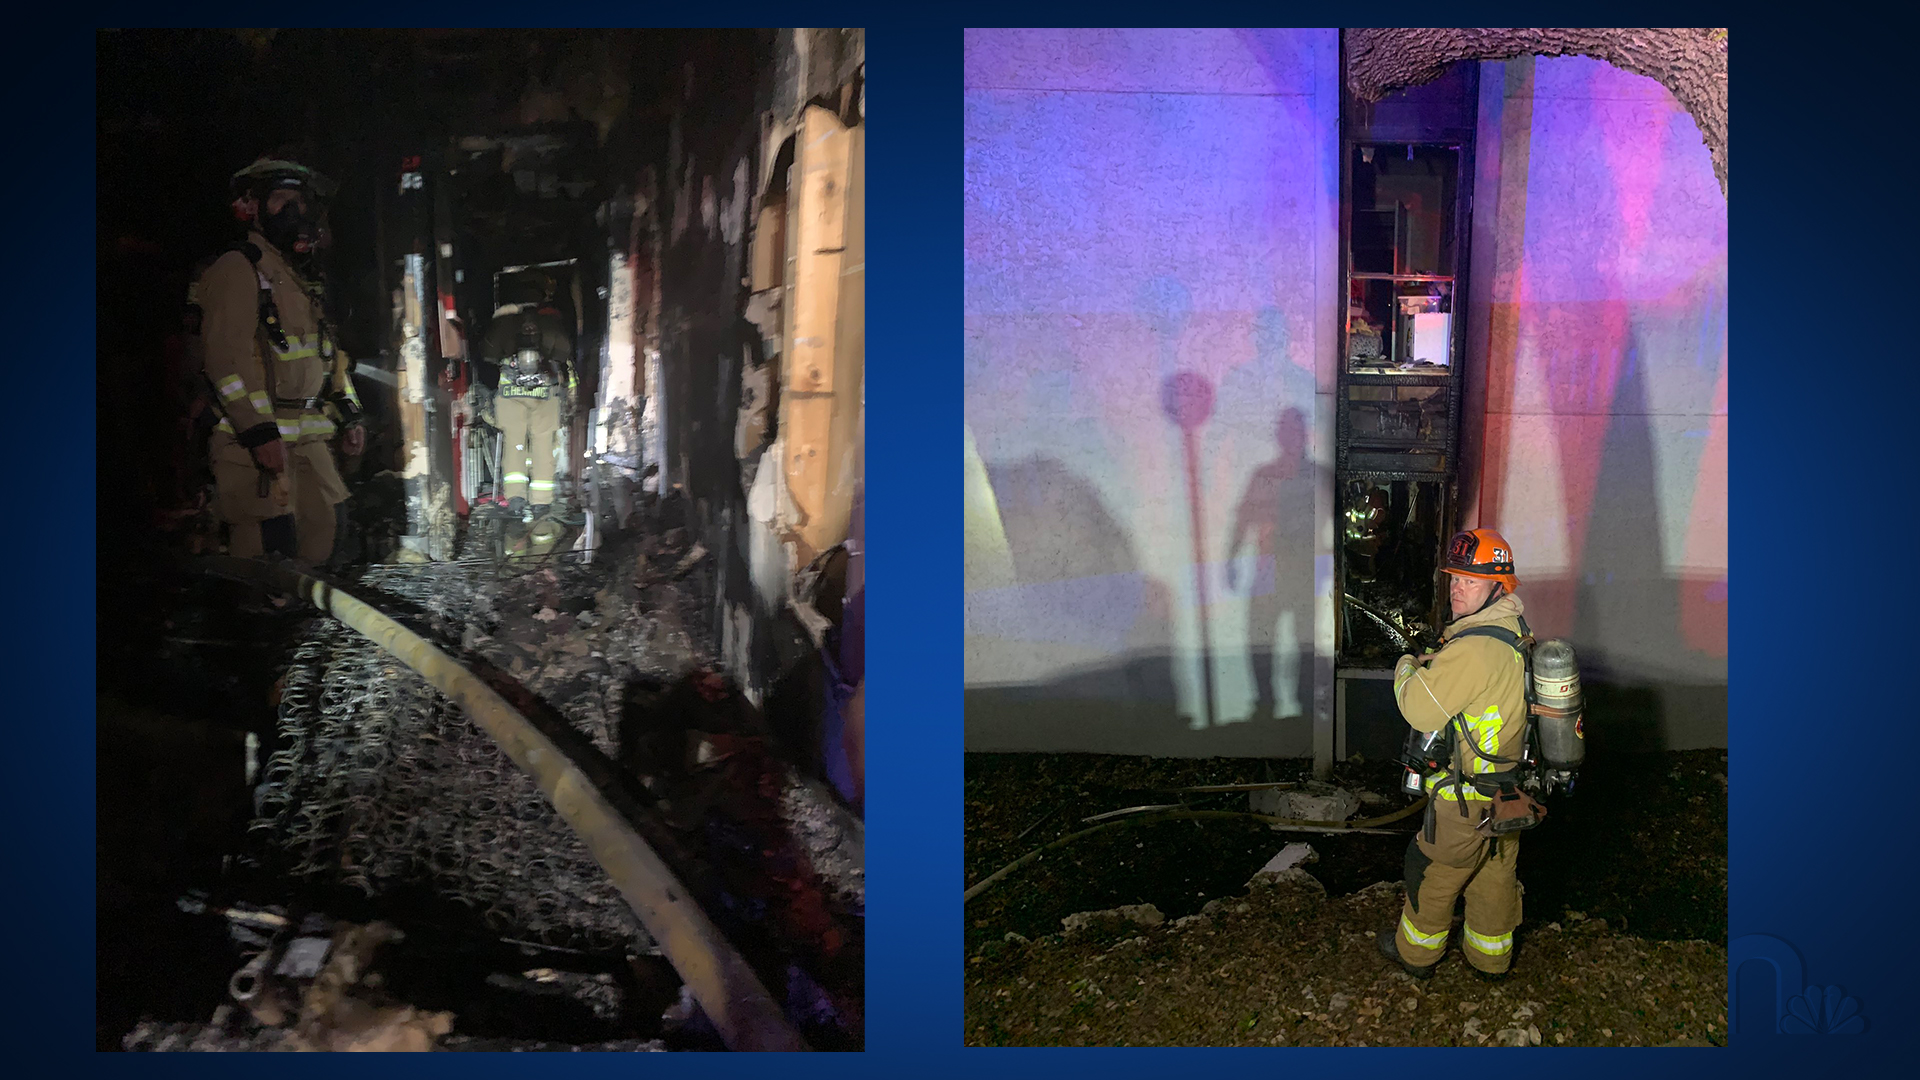 AFD provided these photos of a fire at 3517 North Hills Dr. they ruled was an arson Friday morning. AFD said there's a suspect in custody.